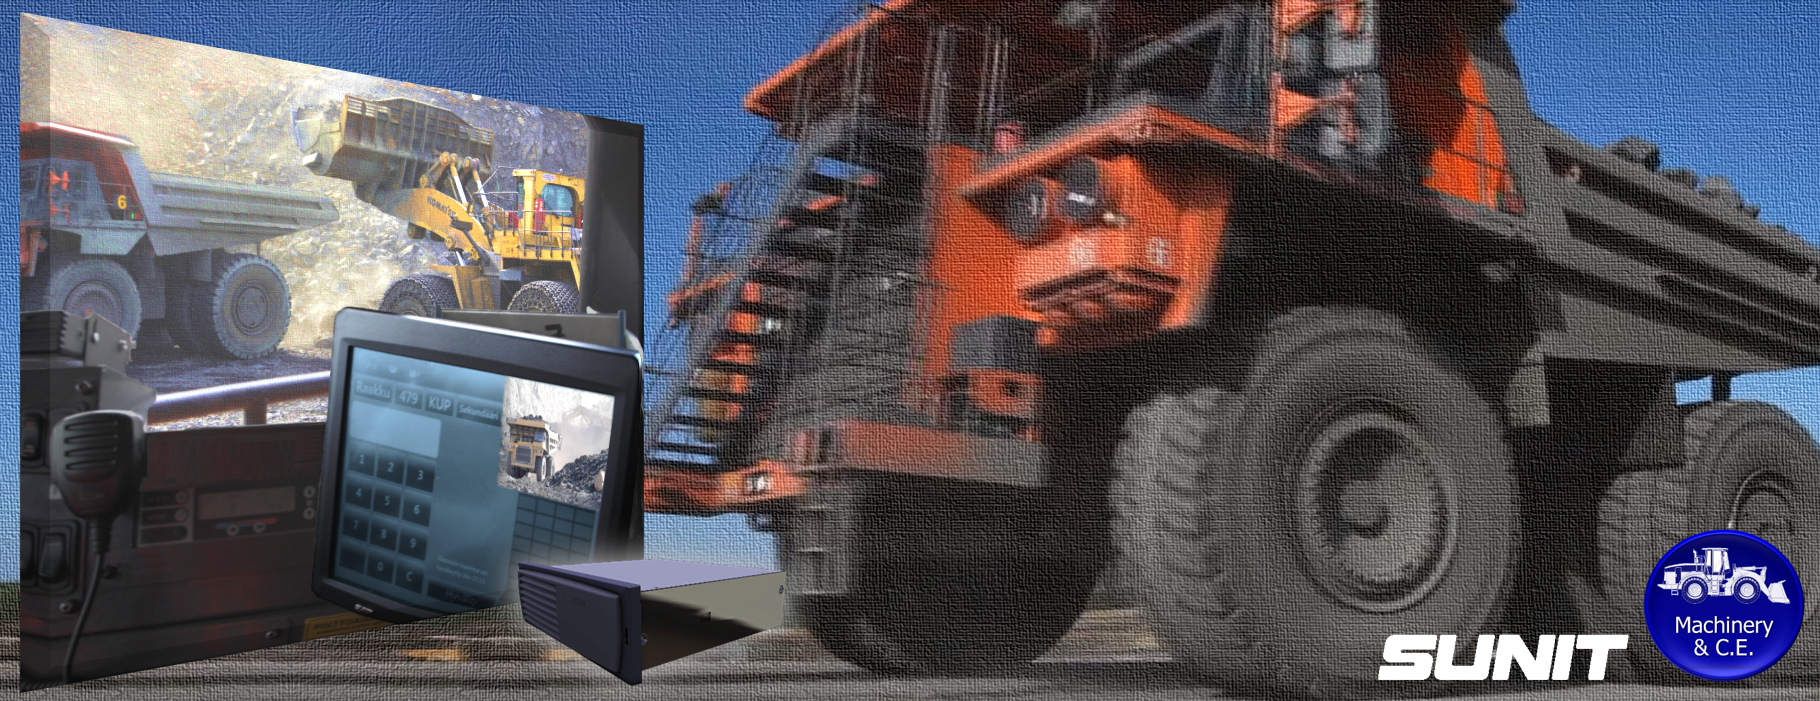 SUNIT Computer for Mining, Heavy Tractors, Excavator, Off-Road